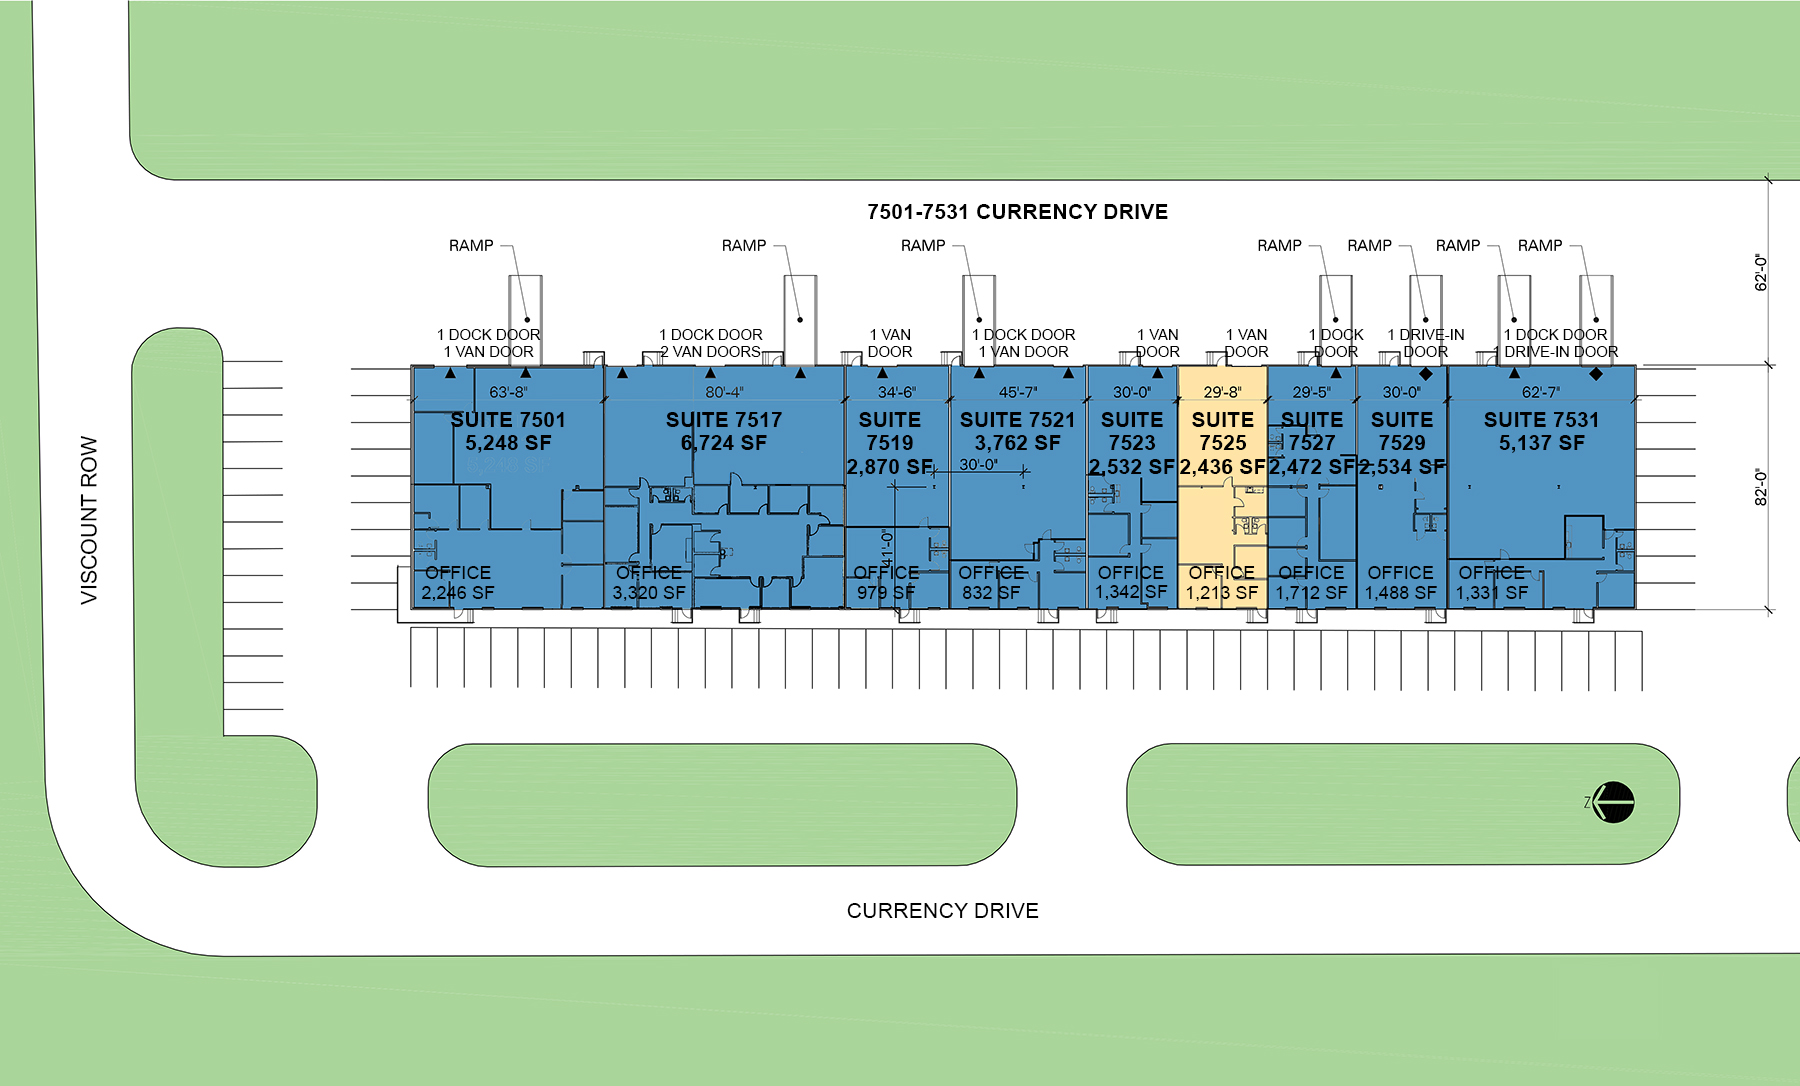 Prologis-Orlando-Central-Park_7501-7531-Currency-Dr_Flyer-Plan.psd